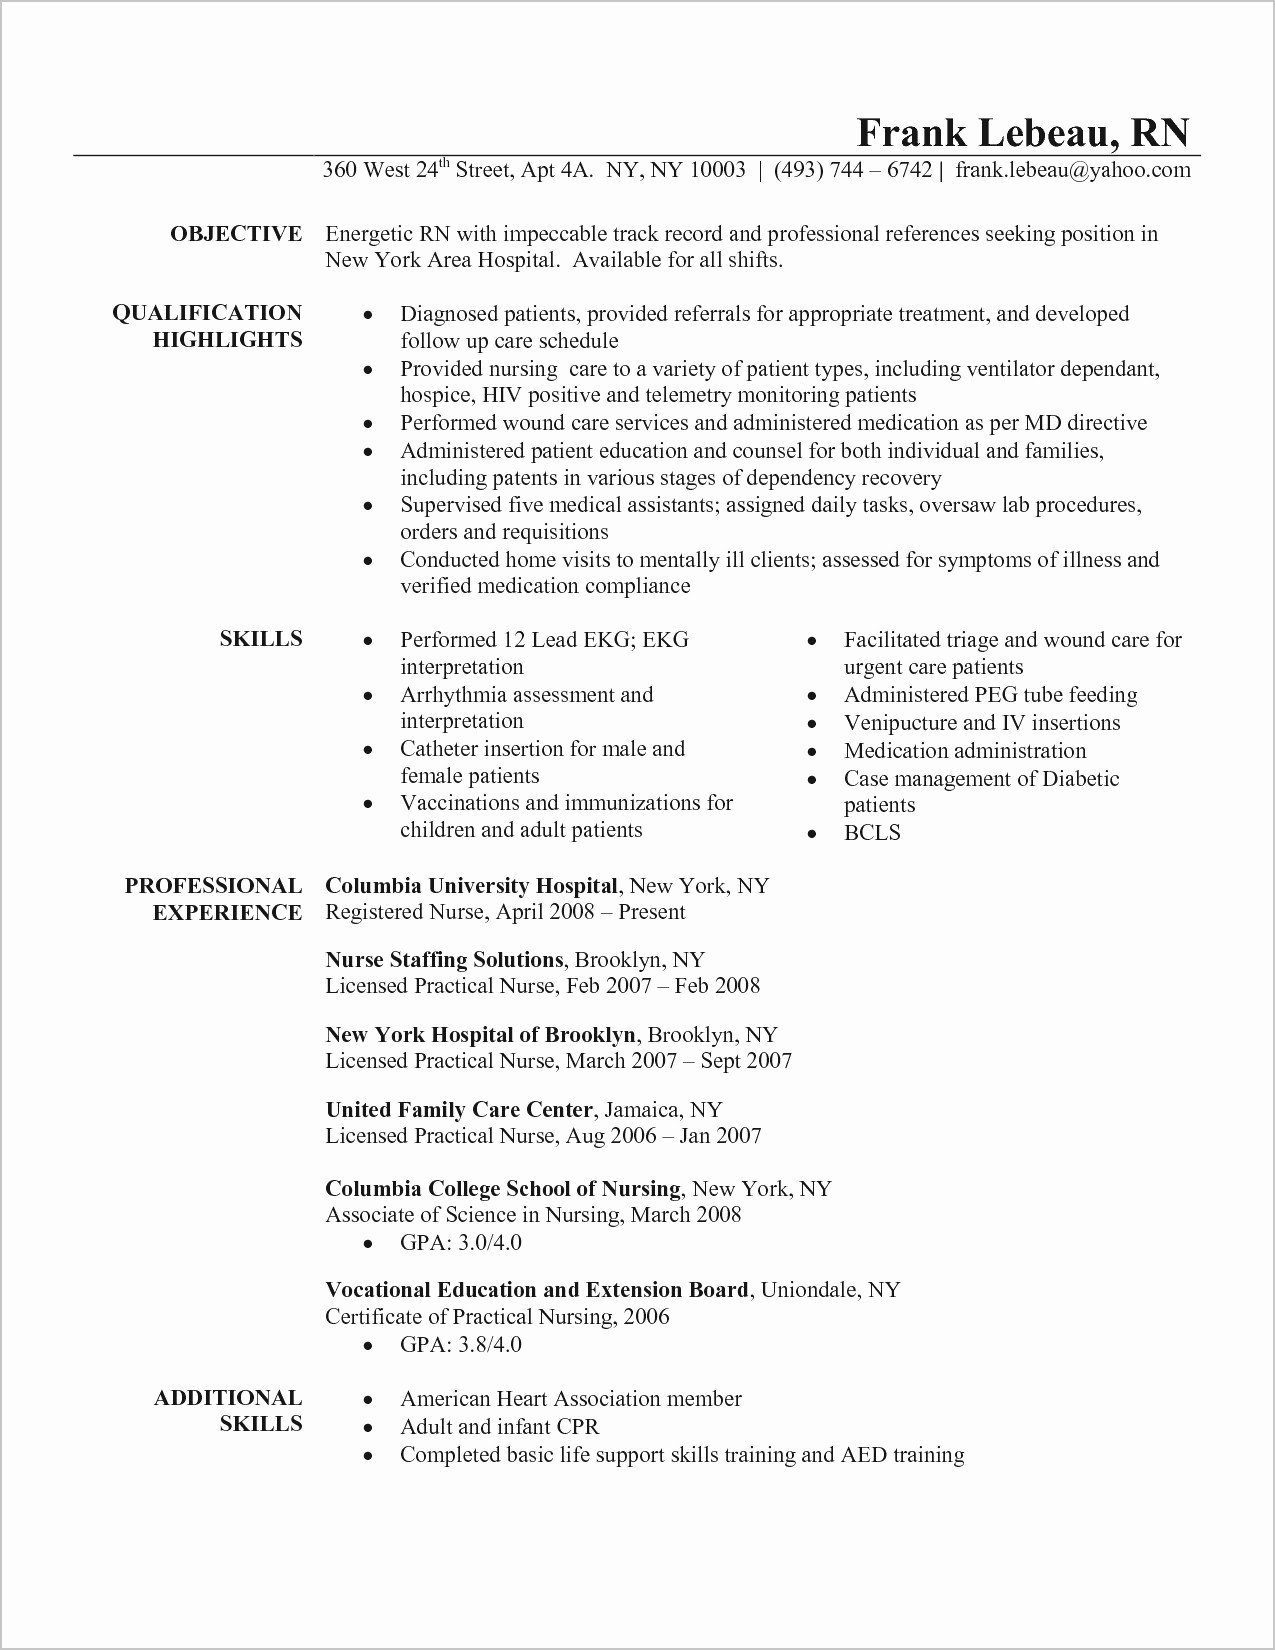 Nursing Student Resume with No Experience - Resume for No Experience Luxury Inspirational Actor Resume Unique